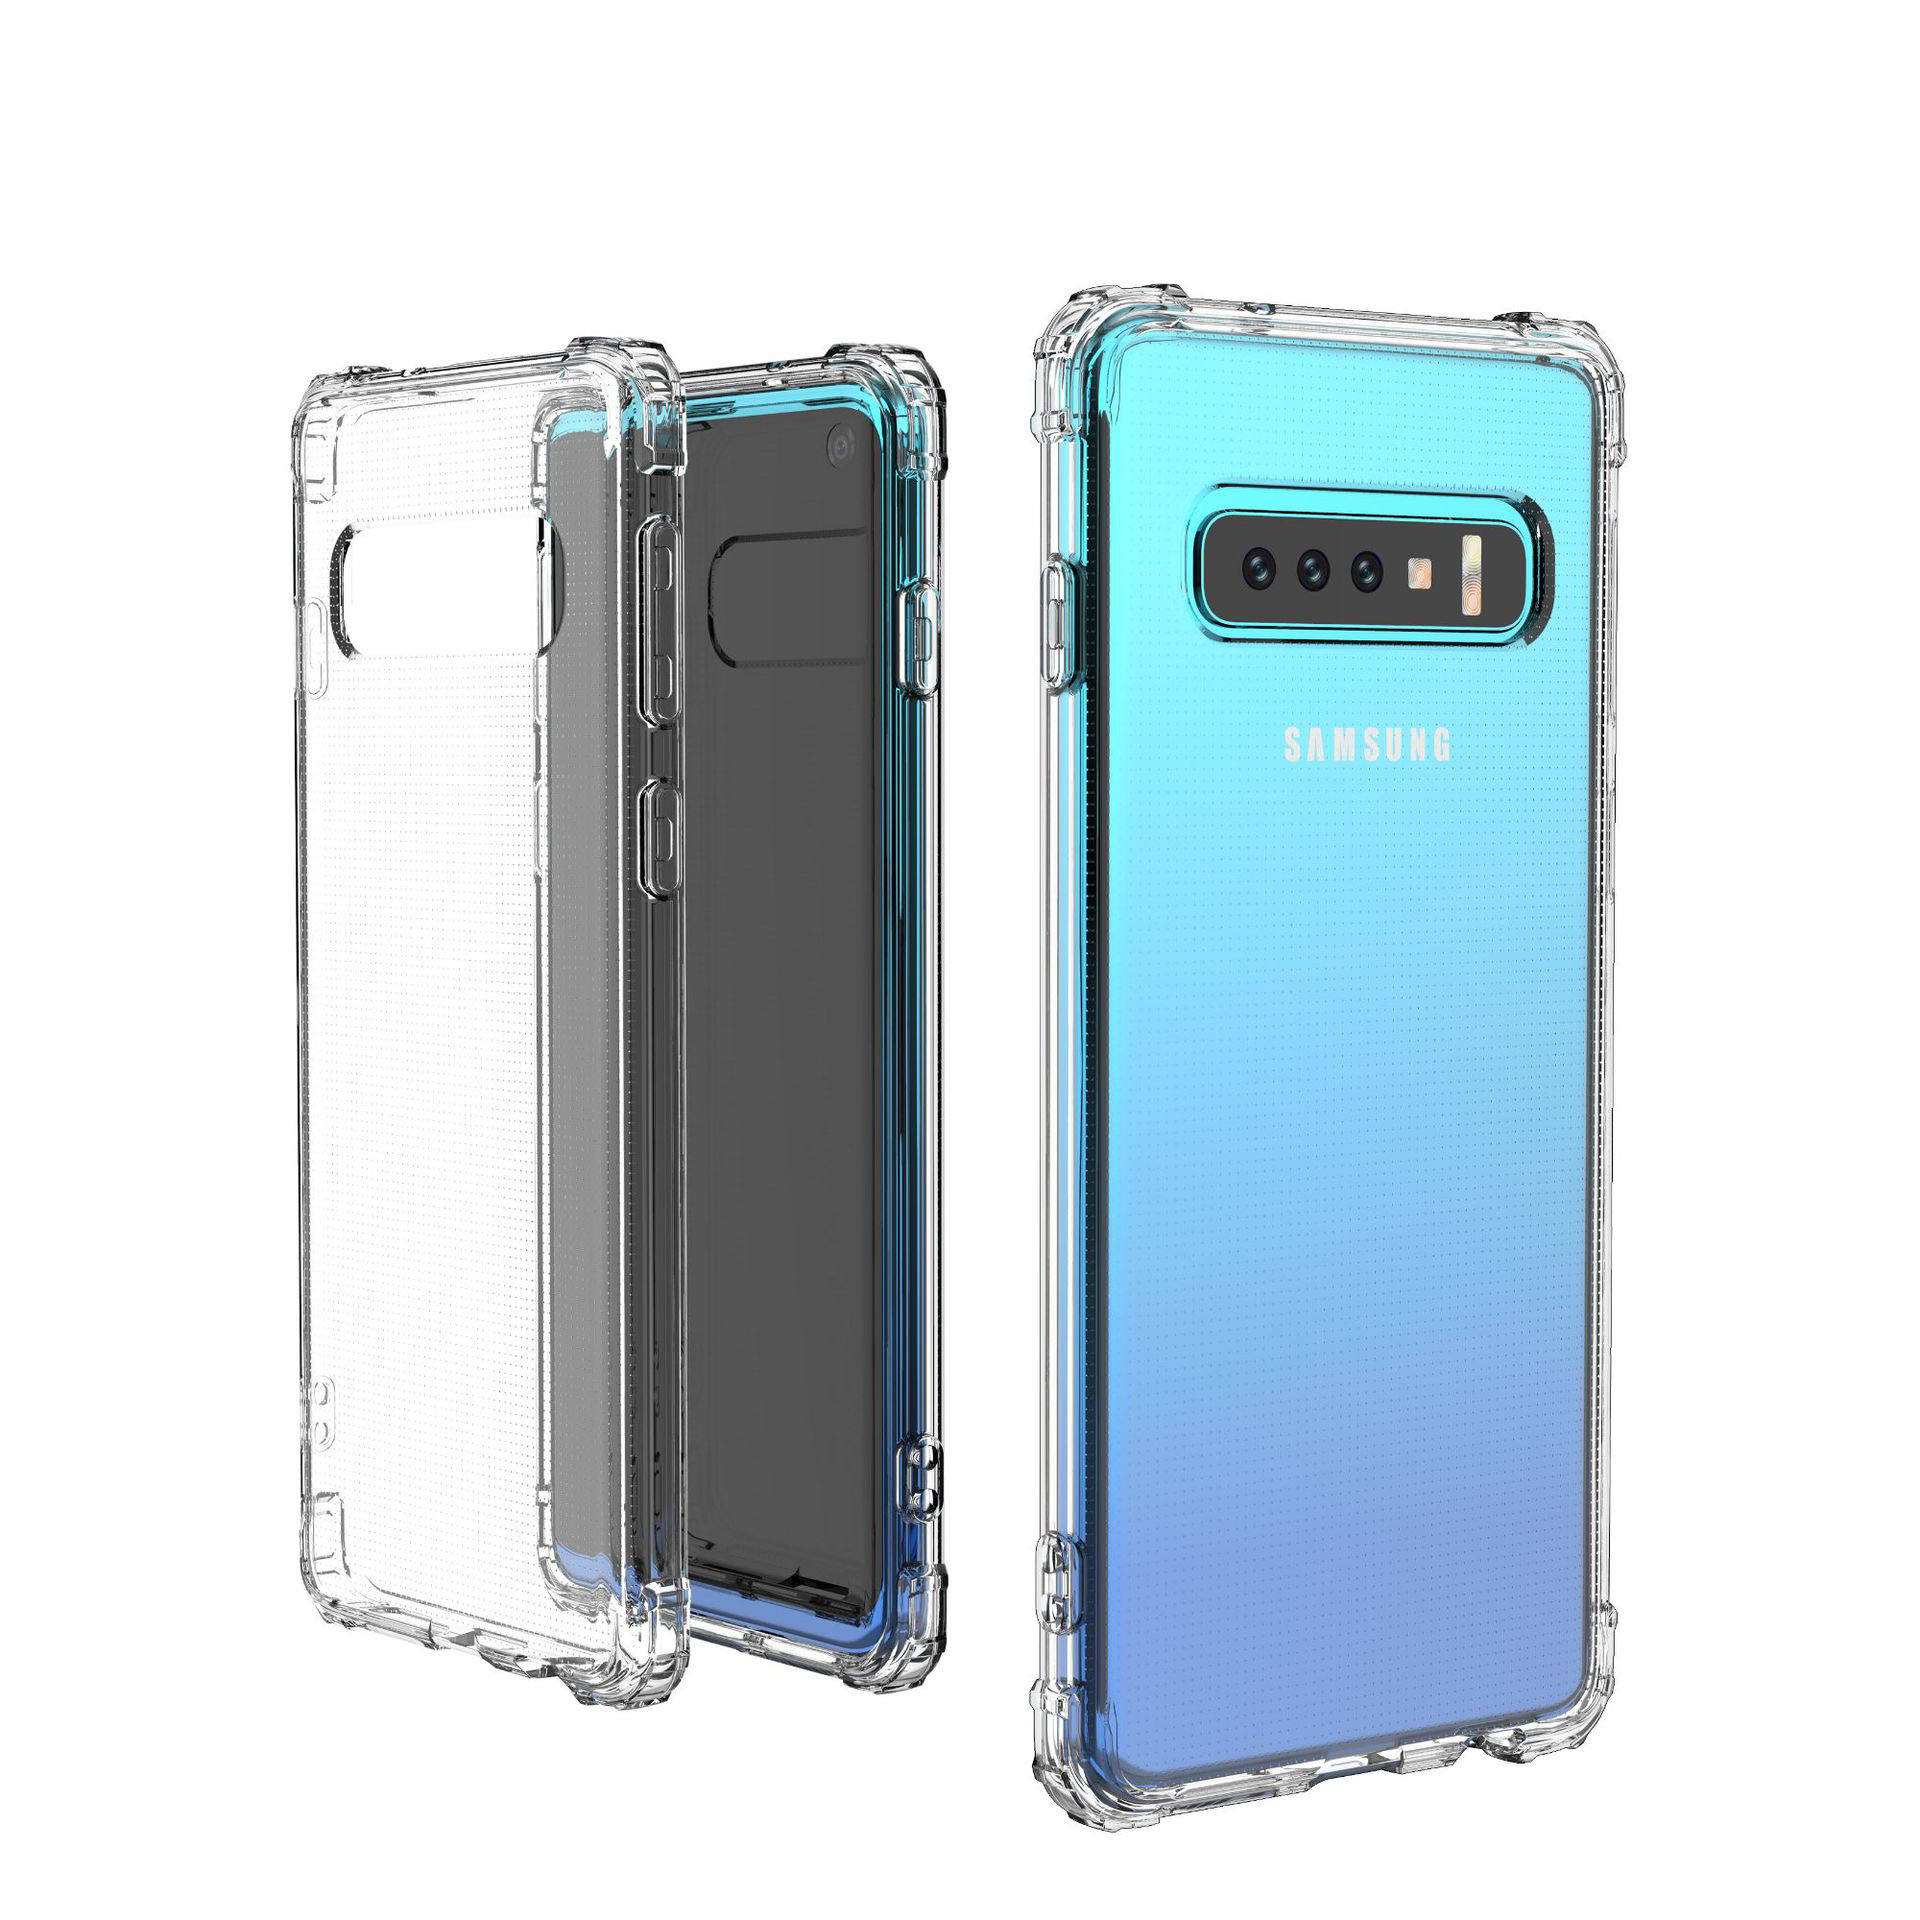 Ultra Hybrid for Samsung S10 Case with Air Cushion Technology Hybrid Drop Protection for Samsung S10plus S10e crystal clear case